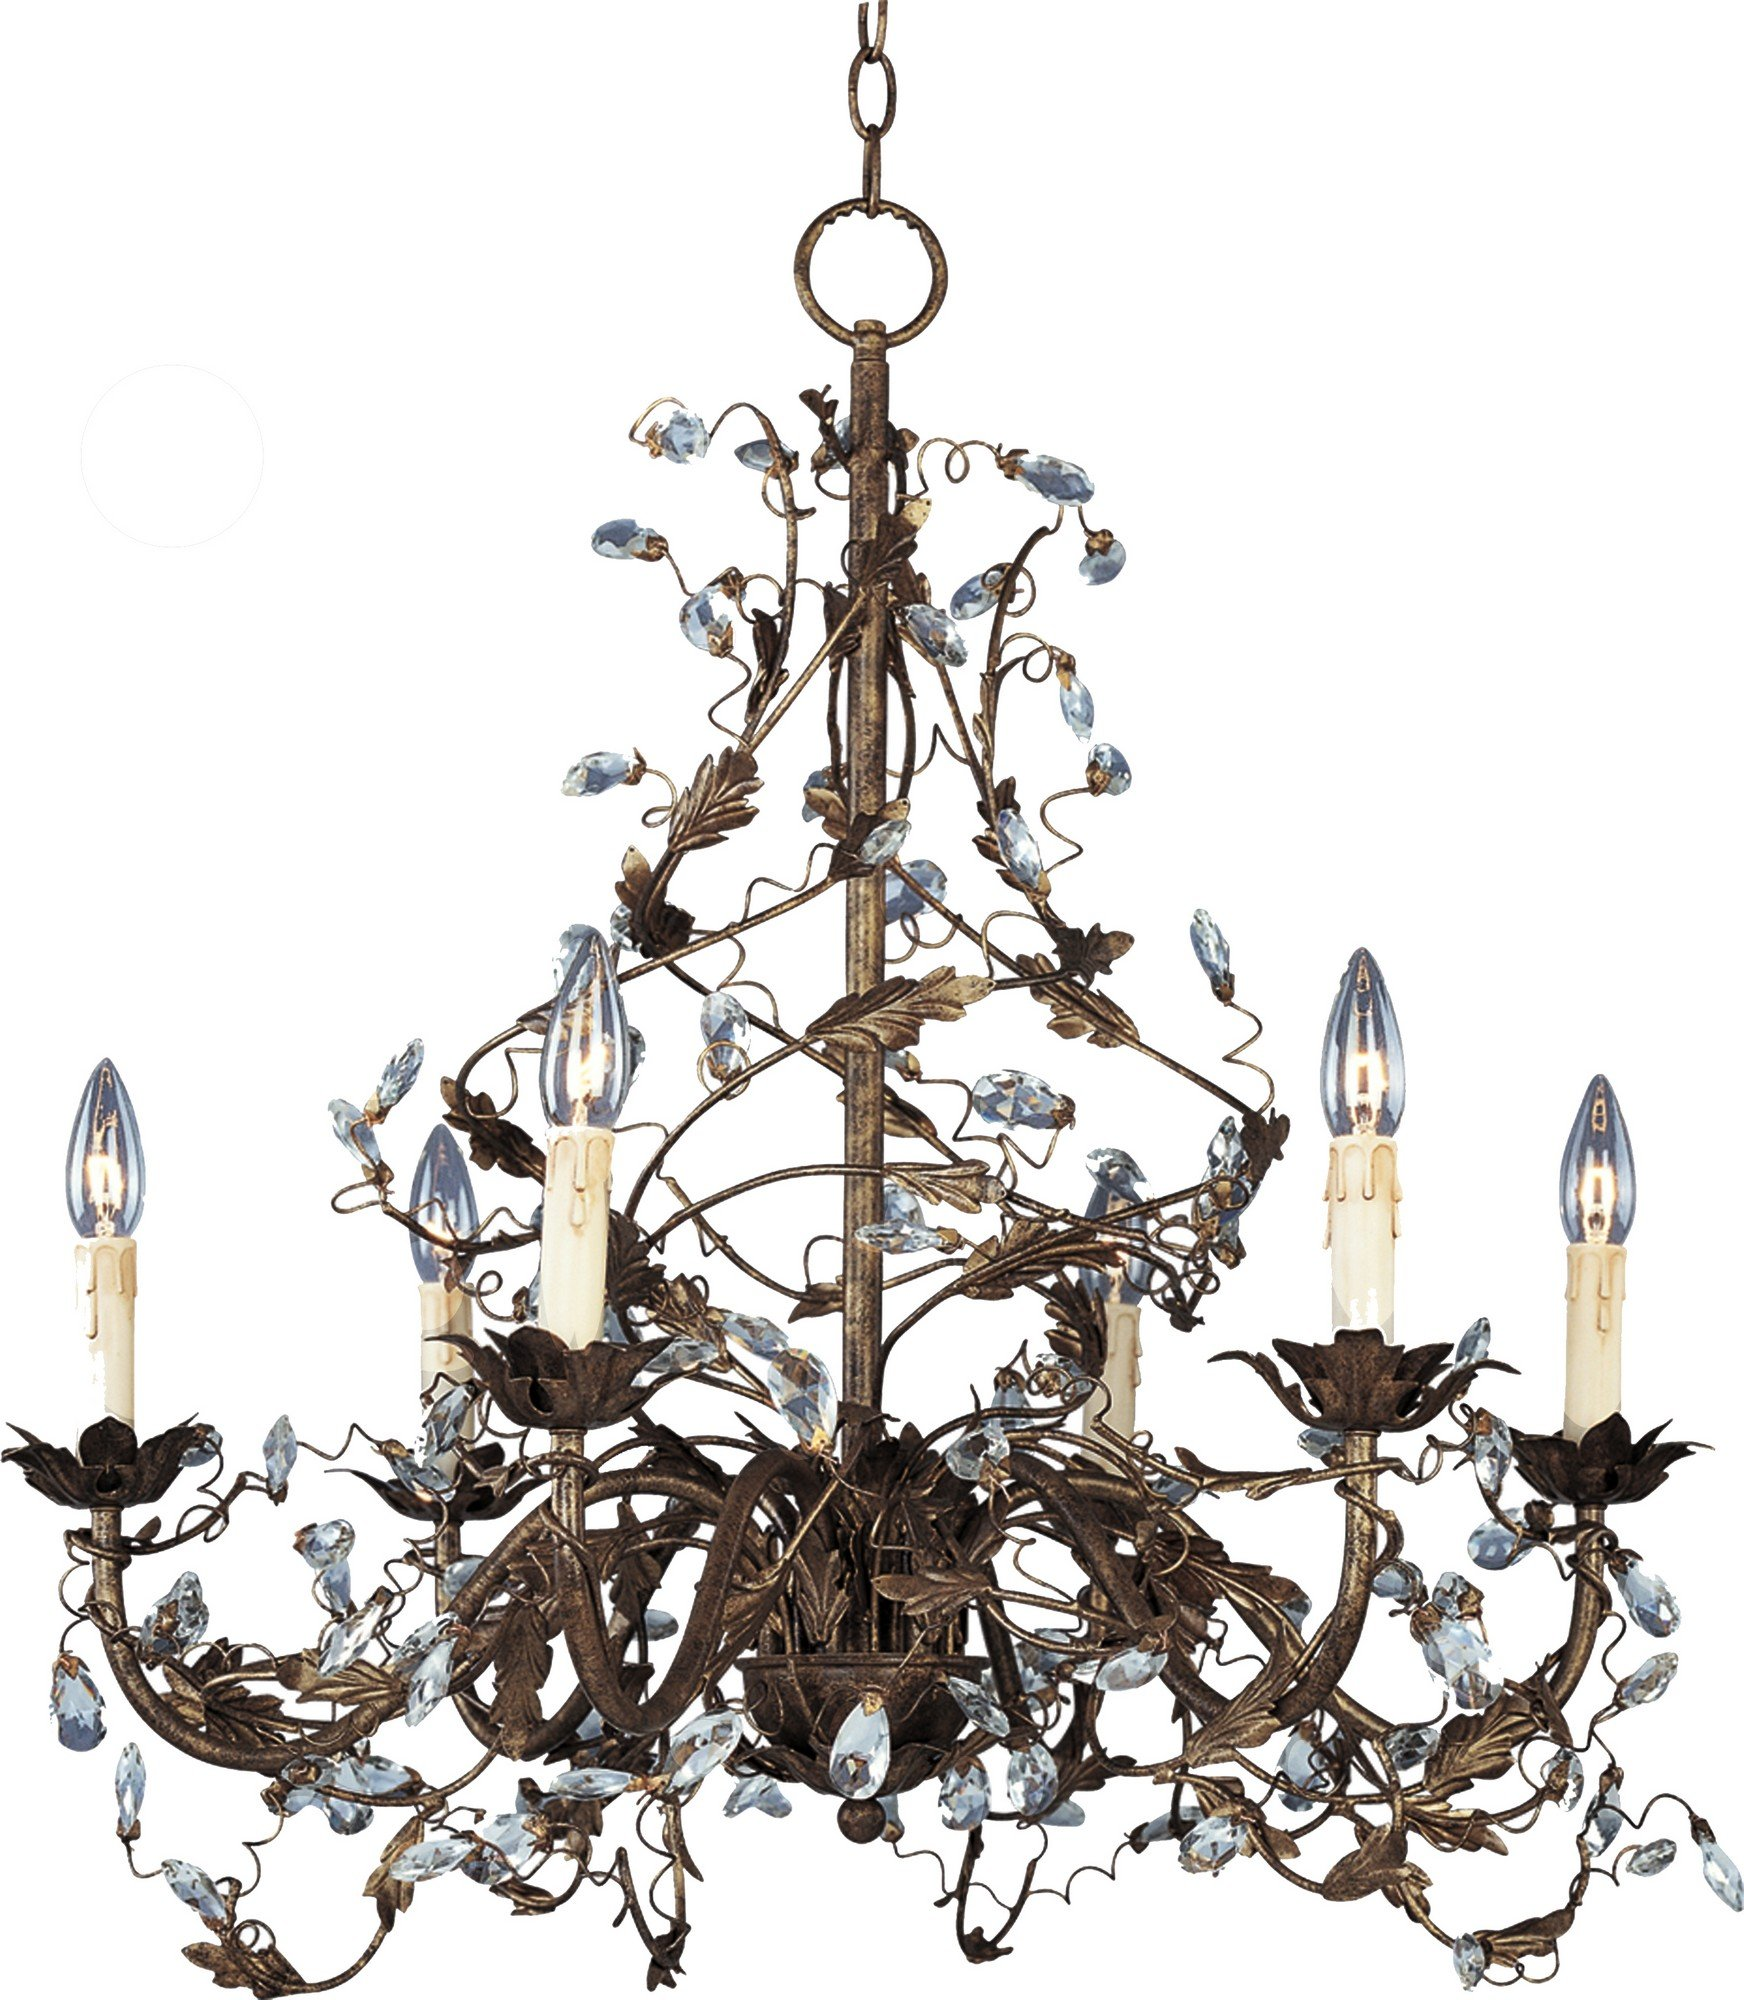 Maxim 2851OI Elegante 6-Light Chandelier, Oil Rubbed Bronze Finish, Glass, CA Incandescent Incandescent Bulb , 60W Max., Dry Safety Rating, Standard Dimmable, Glass Shade Material, 672 Rated Lumens